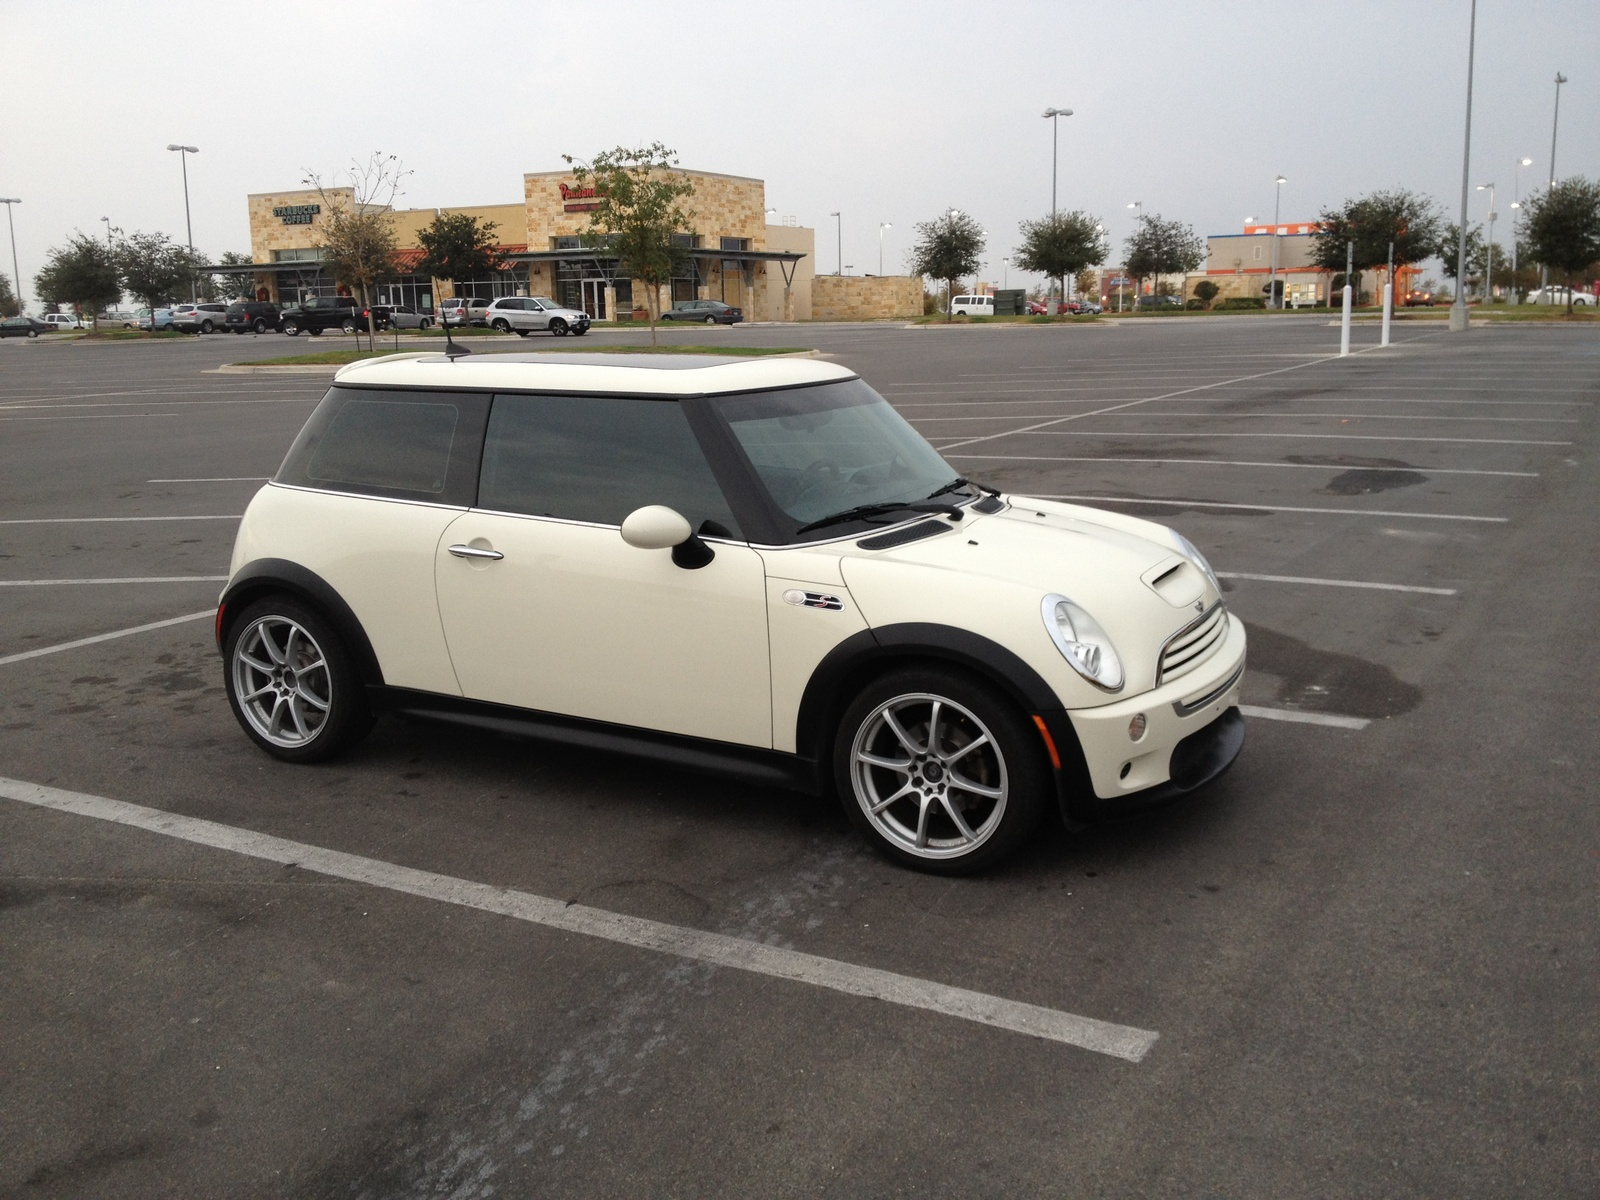 Mini Cooper D All4 Countryman R60 Bright Yellow 15 in addition Wallpaper af also Mini Countryman Grille Light Brackets Oem Gen2 R60 R61 besides 6489263679 moreover 49207. on 2011 countryman